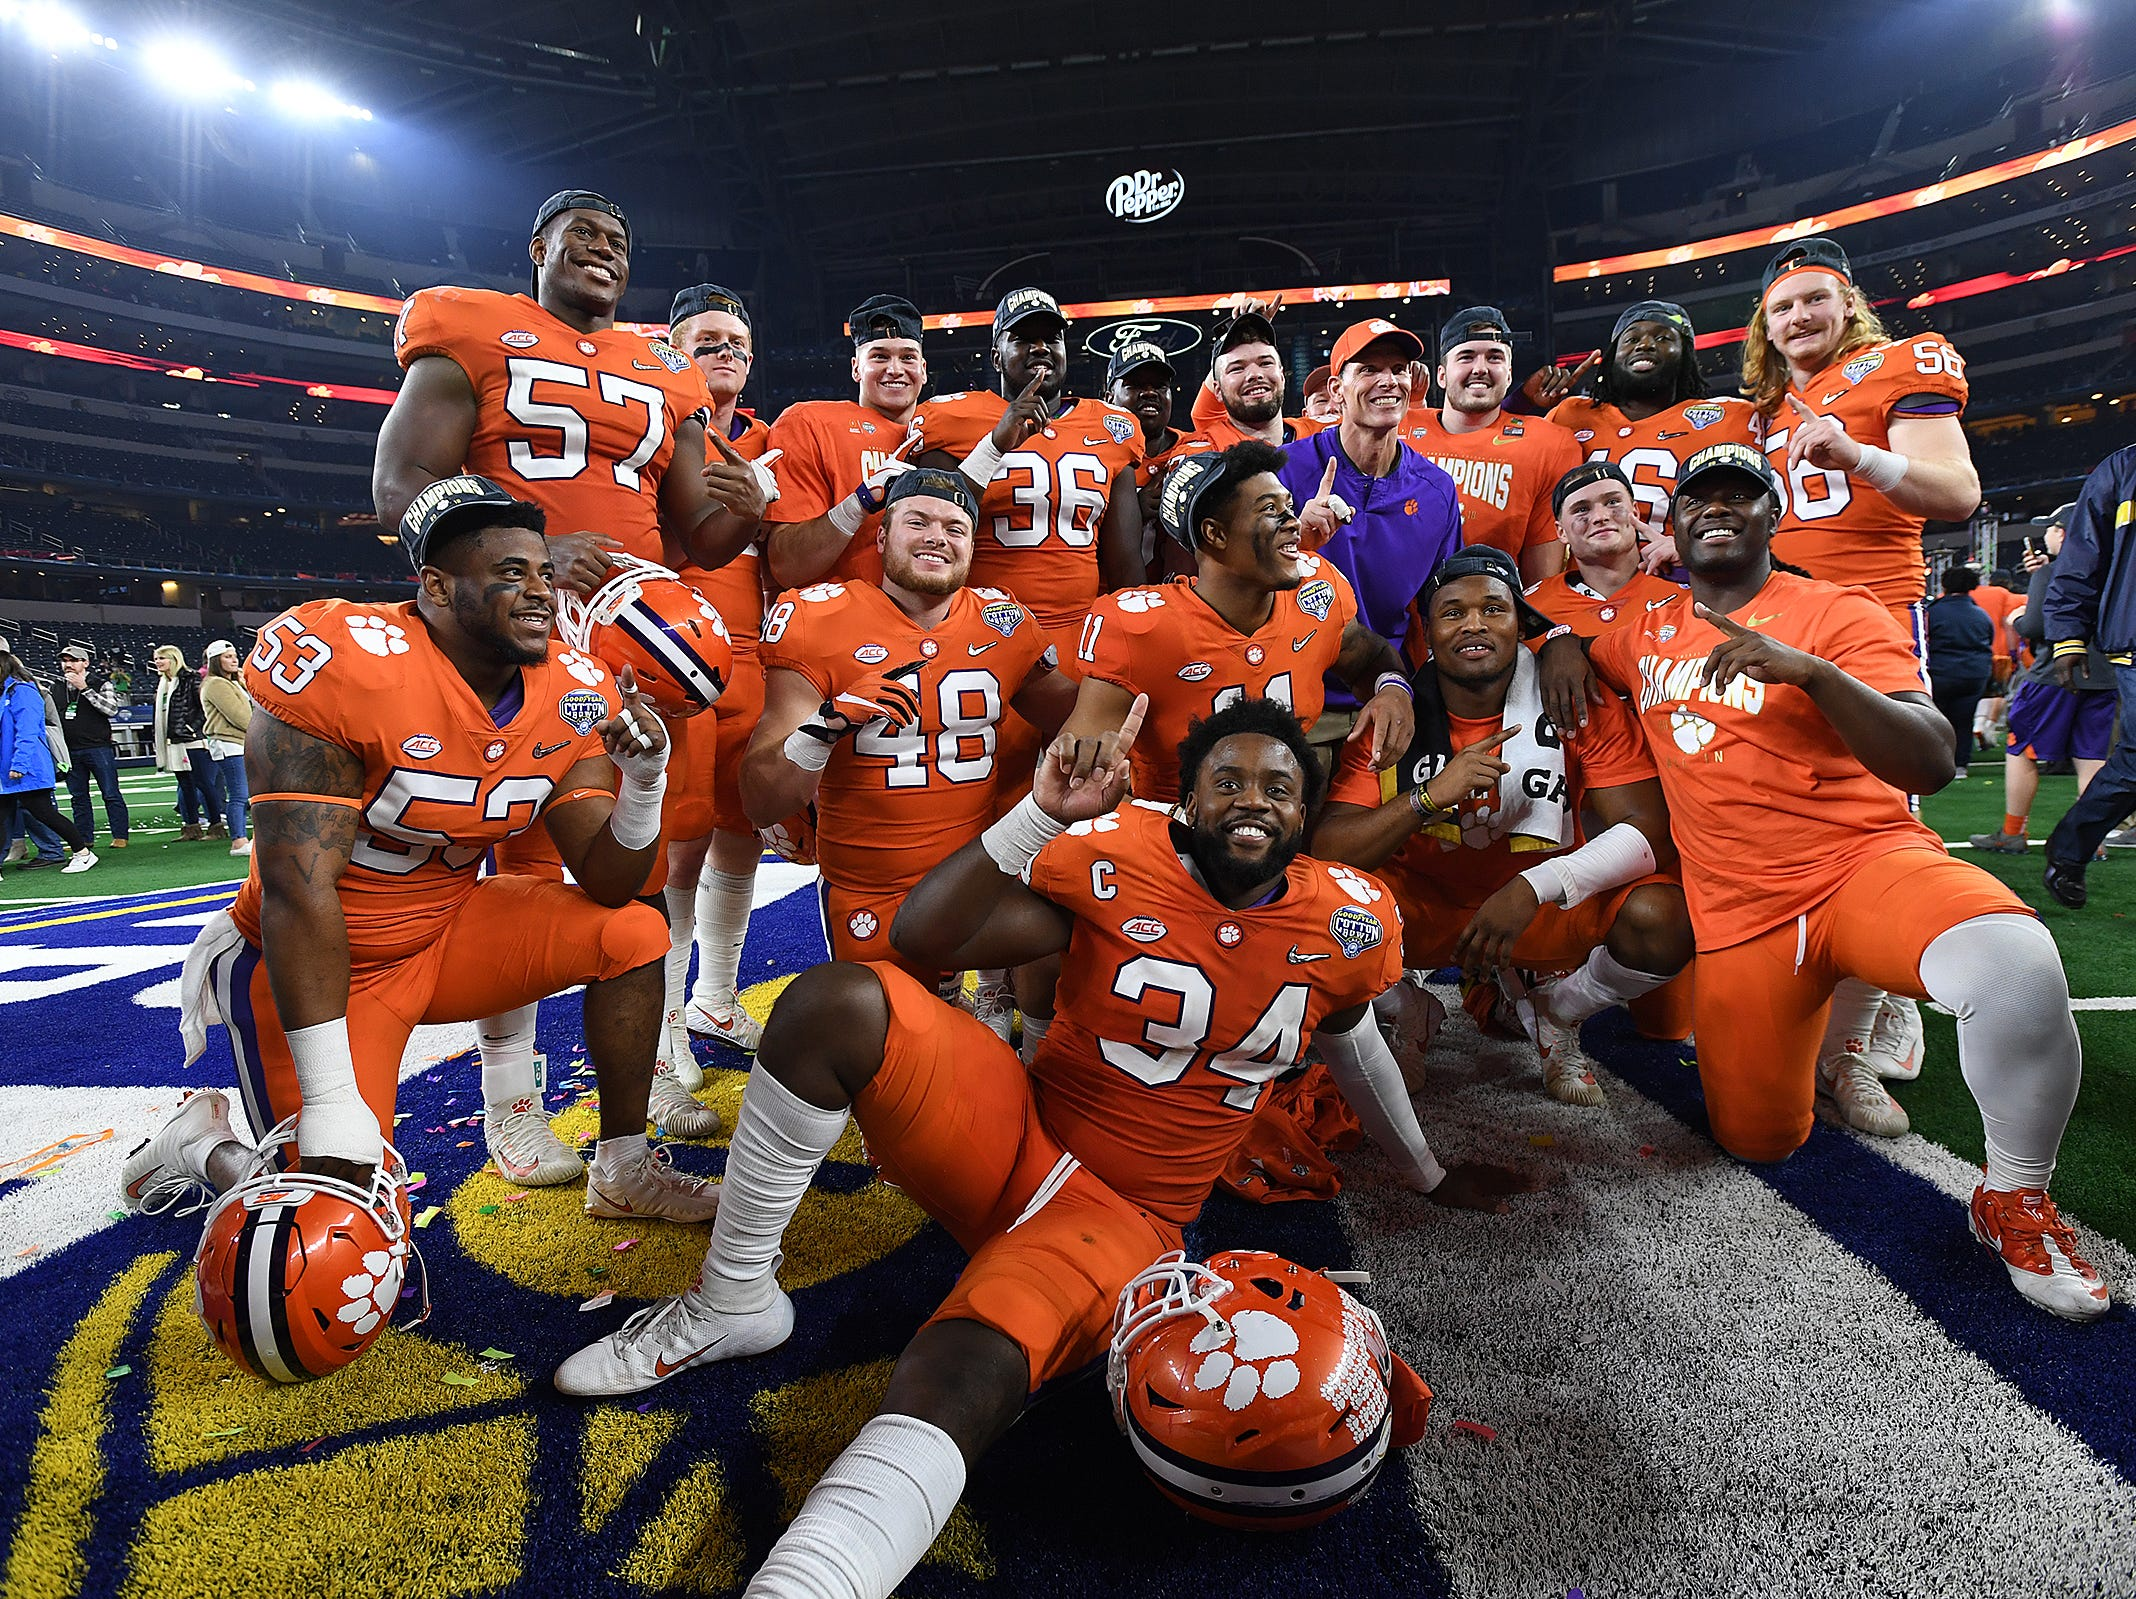 Clemson's defense after the Tigers 30-3 win over Notre Dame in the Goodyear Cotton Bowl at AT&T stadium in Arlington, TX Saturday, December 29, 2018.